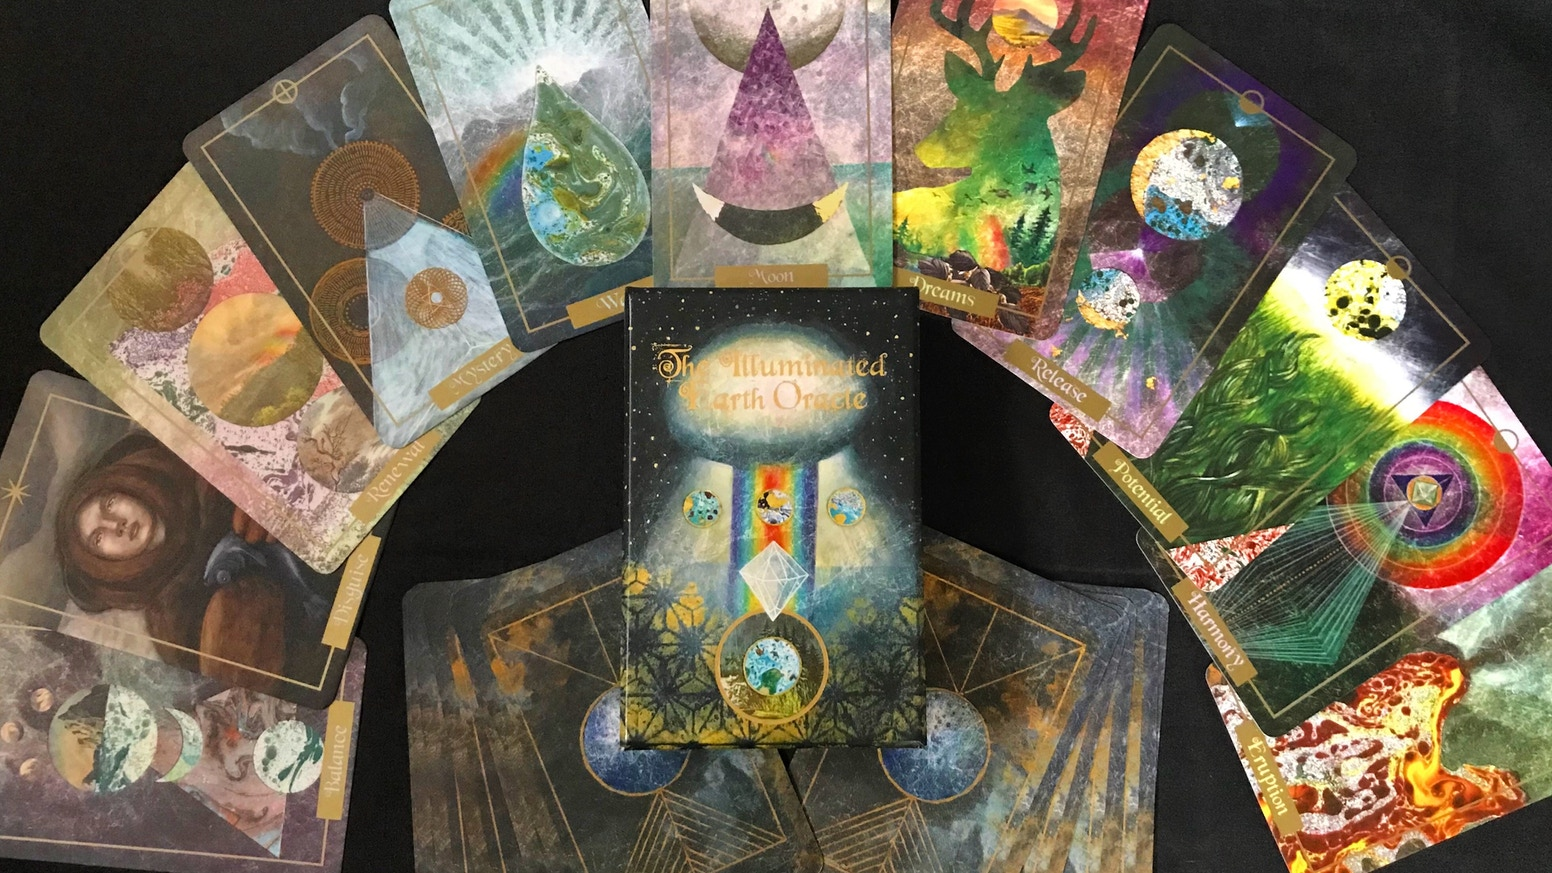 The Illuminated Earth Oracle by Claire Mack — Kickstarter